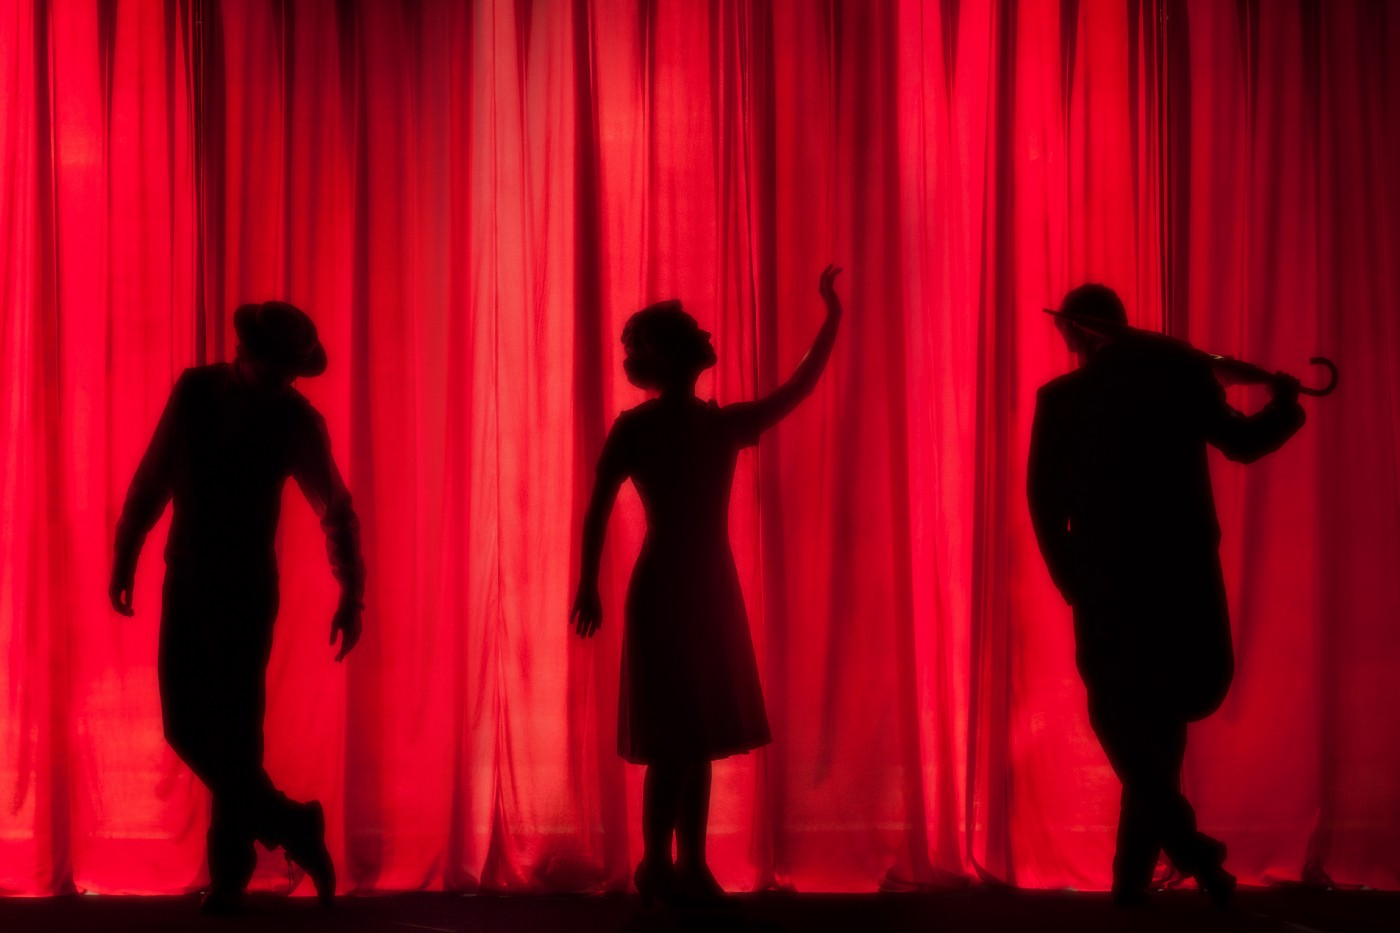 Actors silhouetted on a stage.